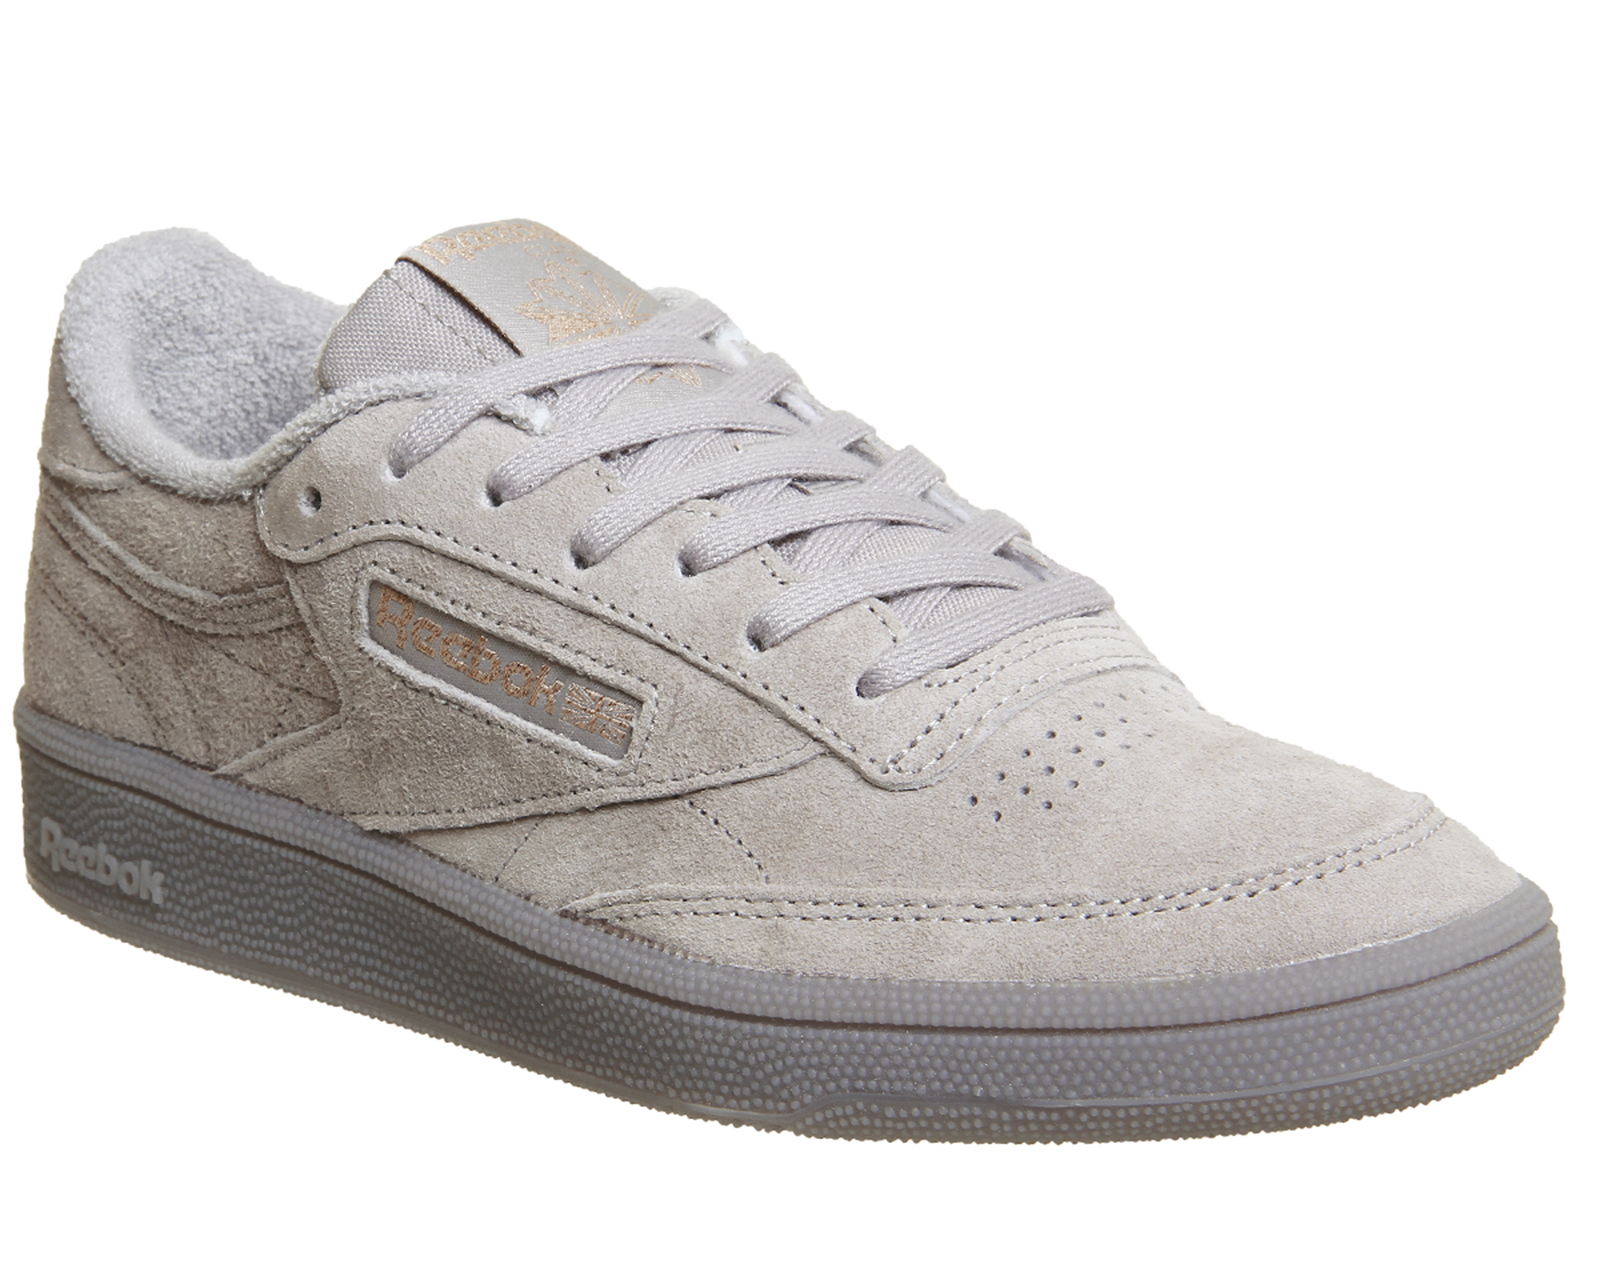 5b2f4ea32f5 Sentinel Womens Reebok Club C 85 Trainers SKULL GREY ROSE GOLD EXCLUSIVE Trainers  Shoes